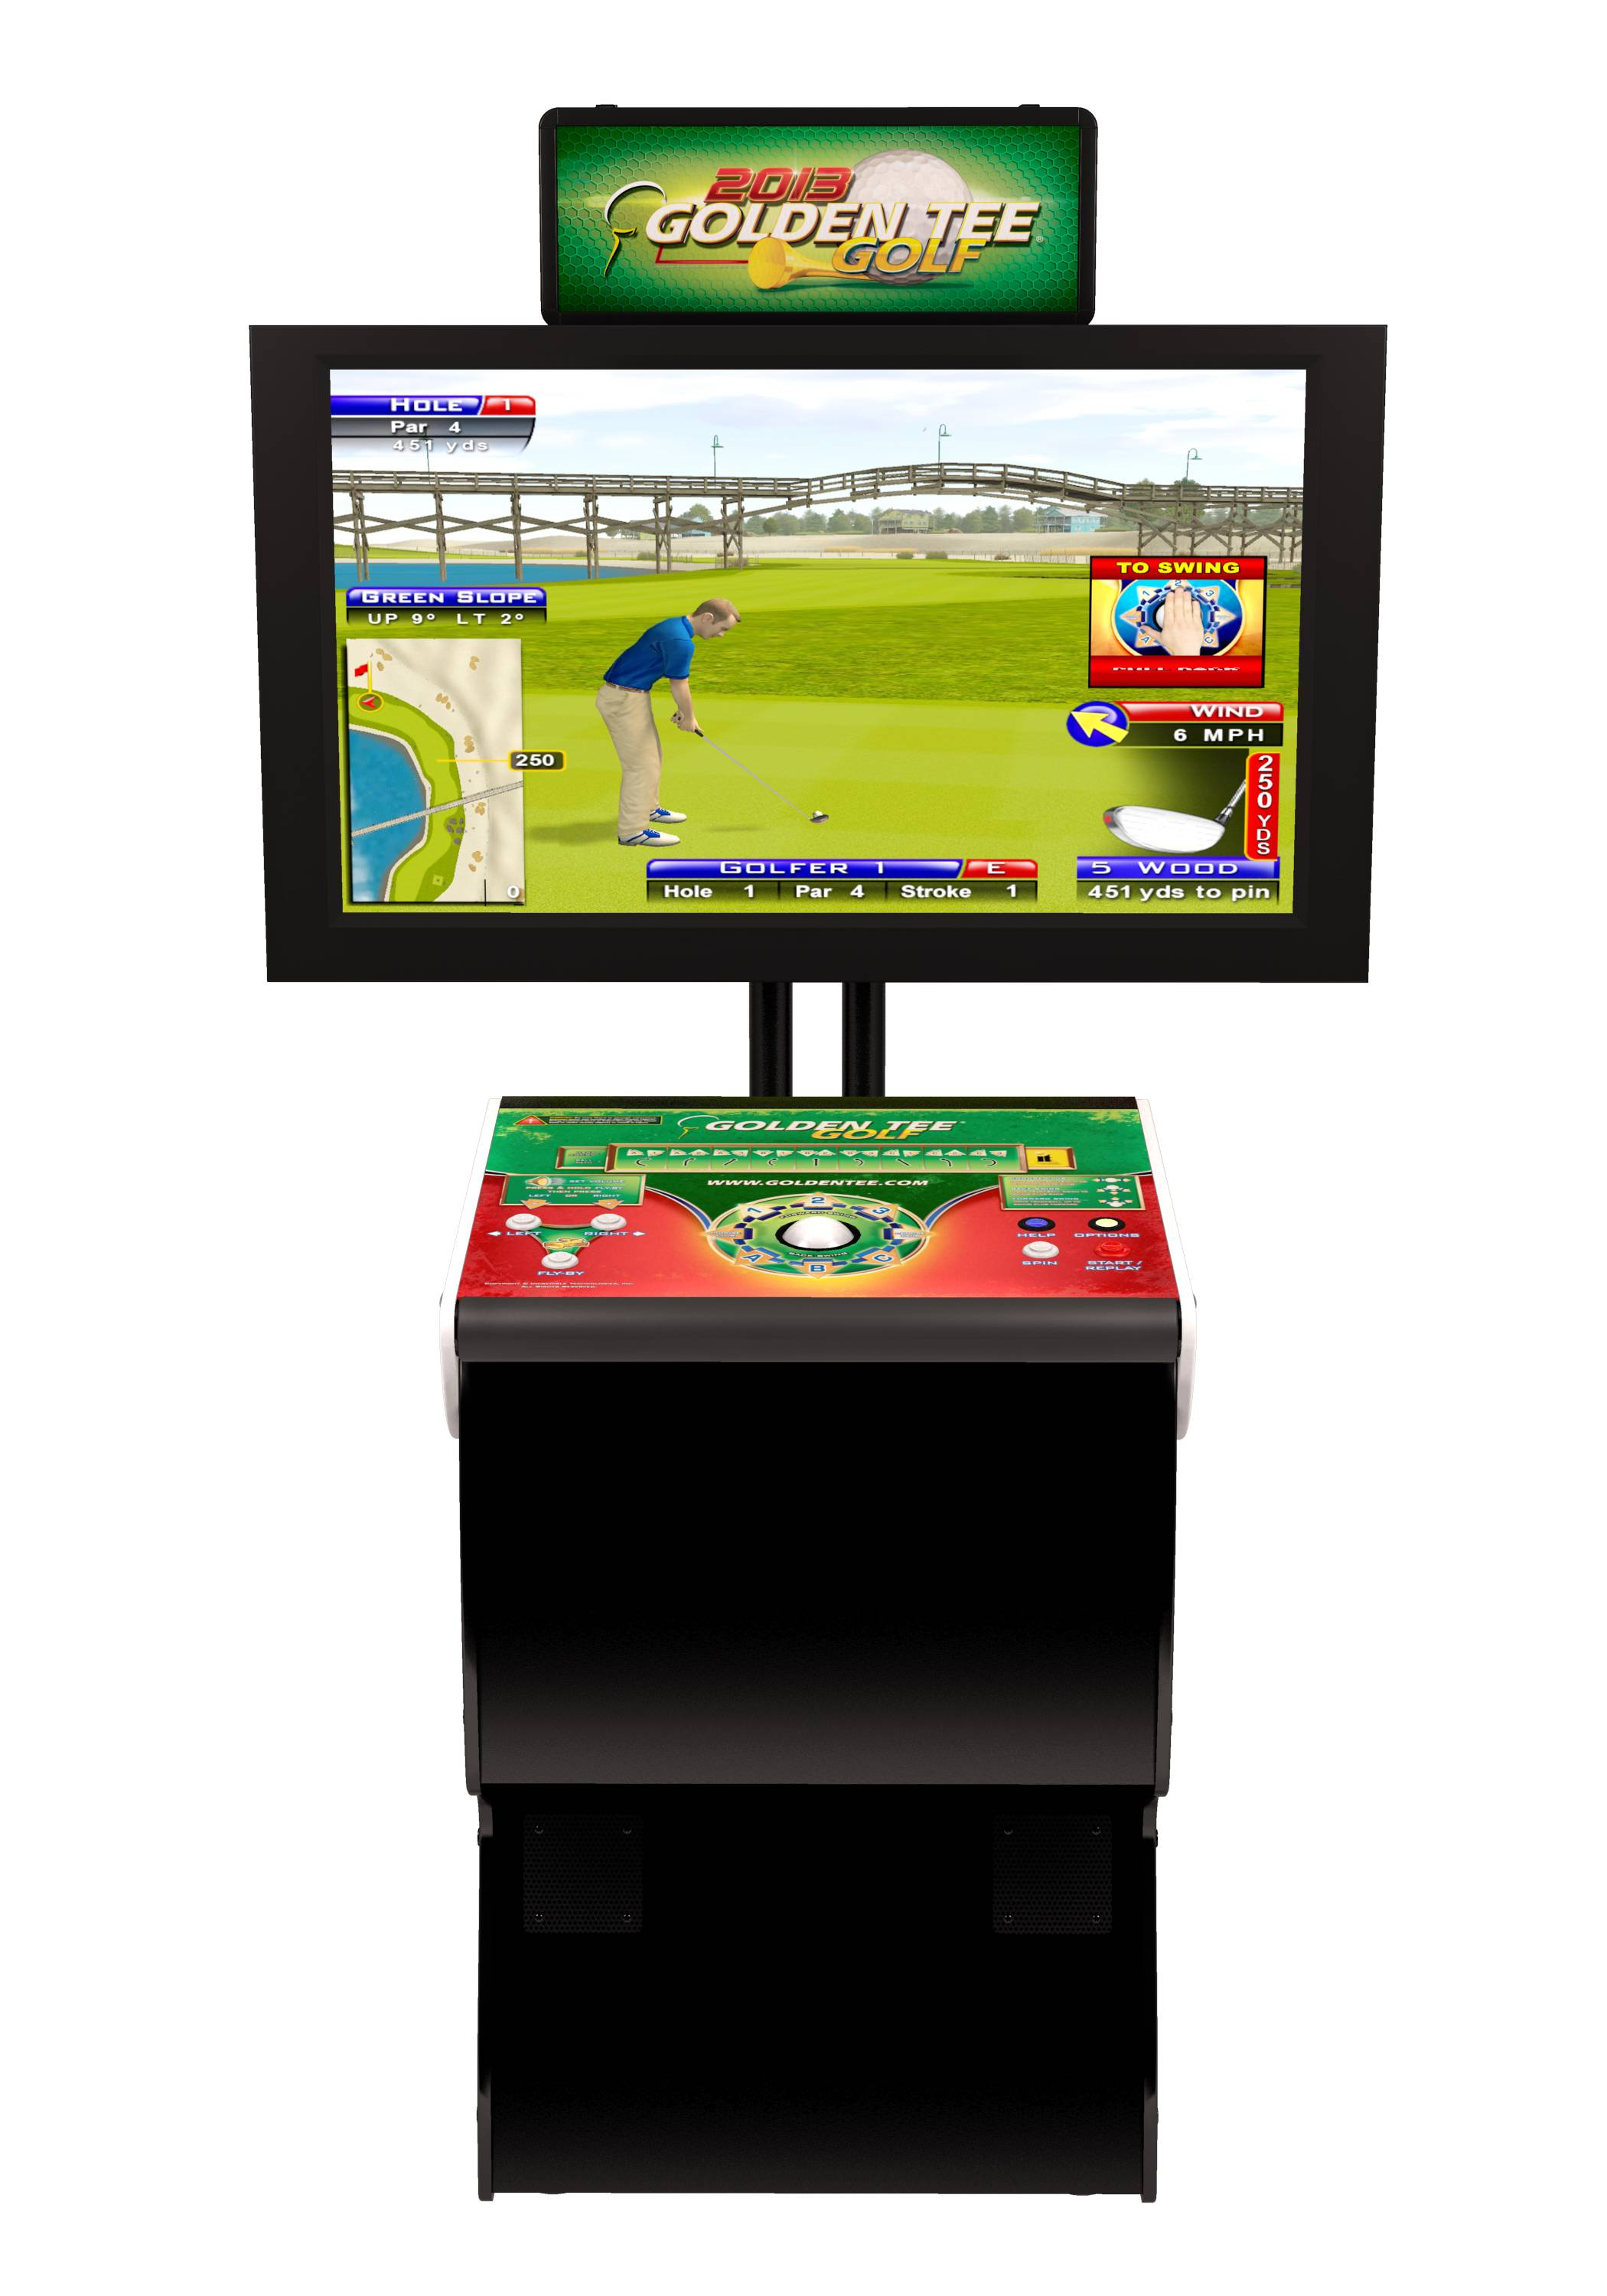 Golden Tee is the #1 coin operated video game in the country.